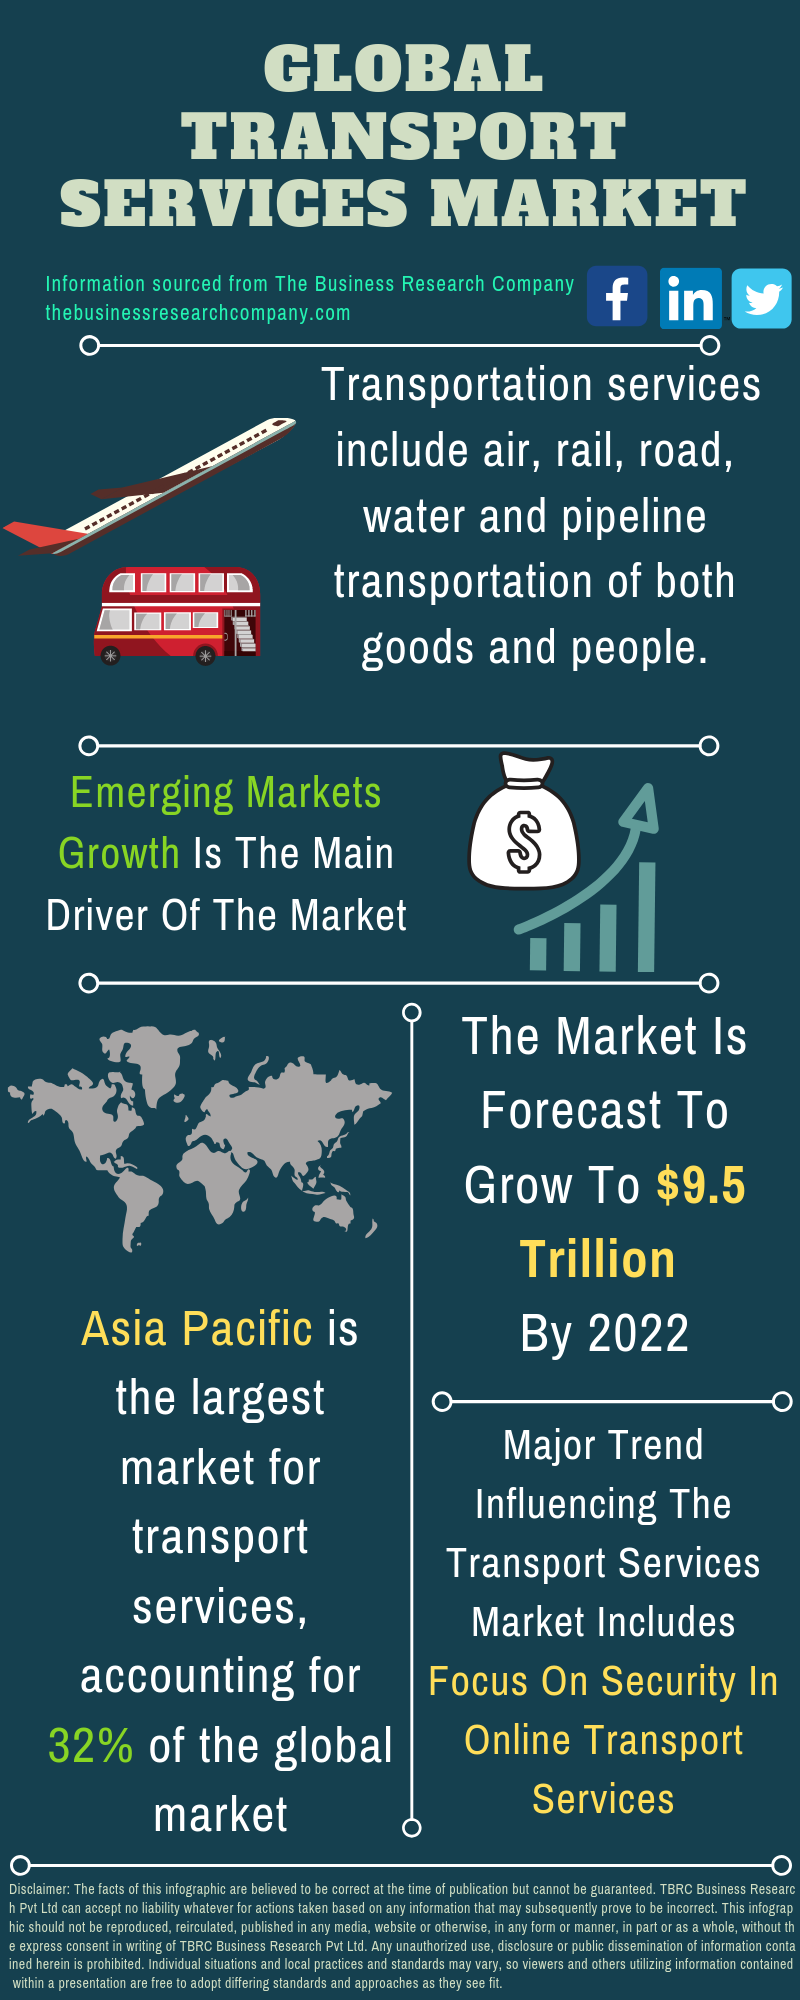 Transport Services Market